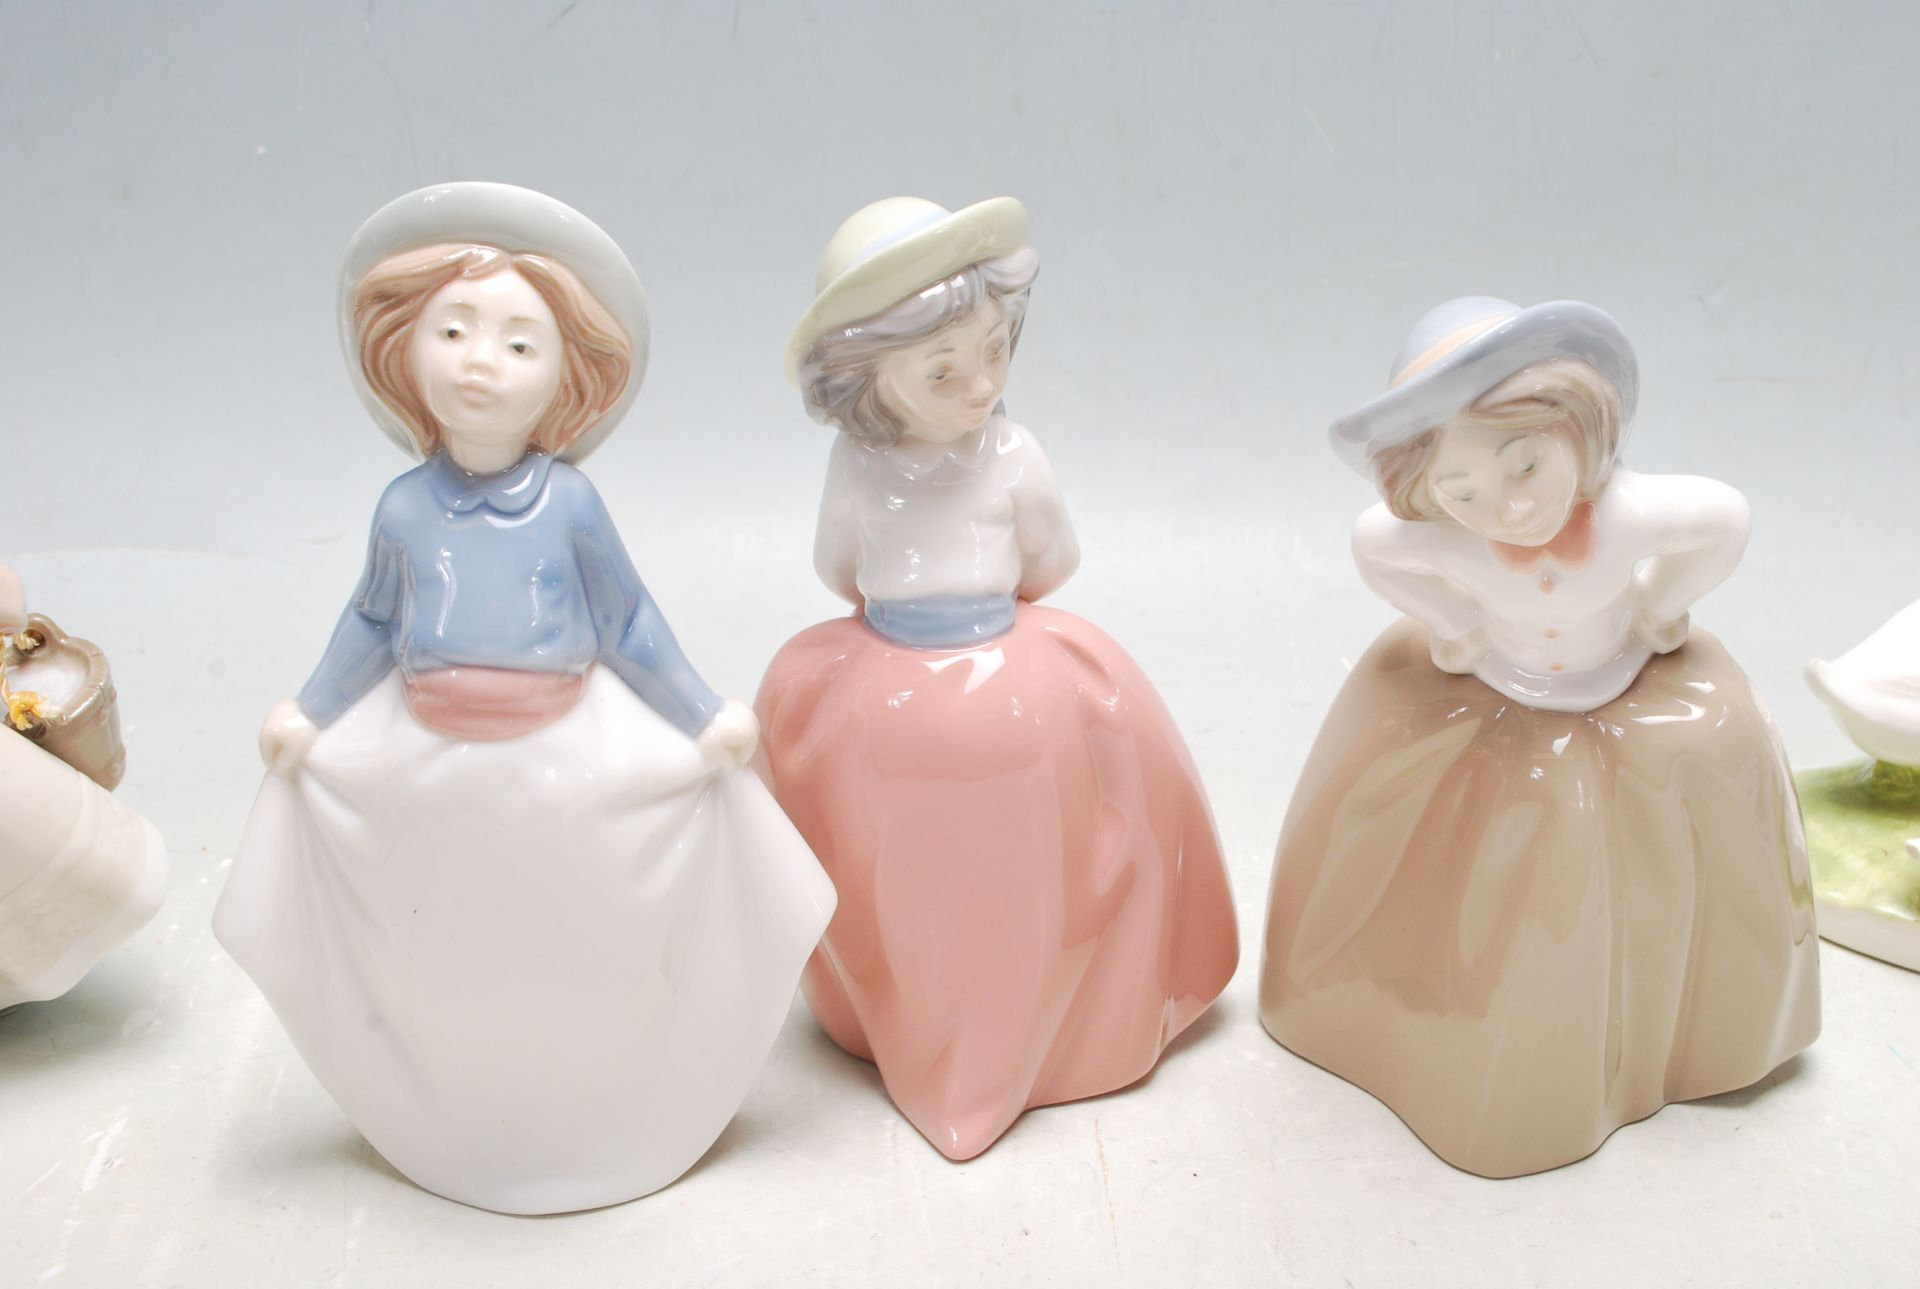 COLELCTION OF LATE 20TH CENTURY CERAMIC PORCELAIN NAO FIGURINES - Image 4 of 8